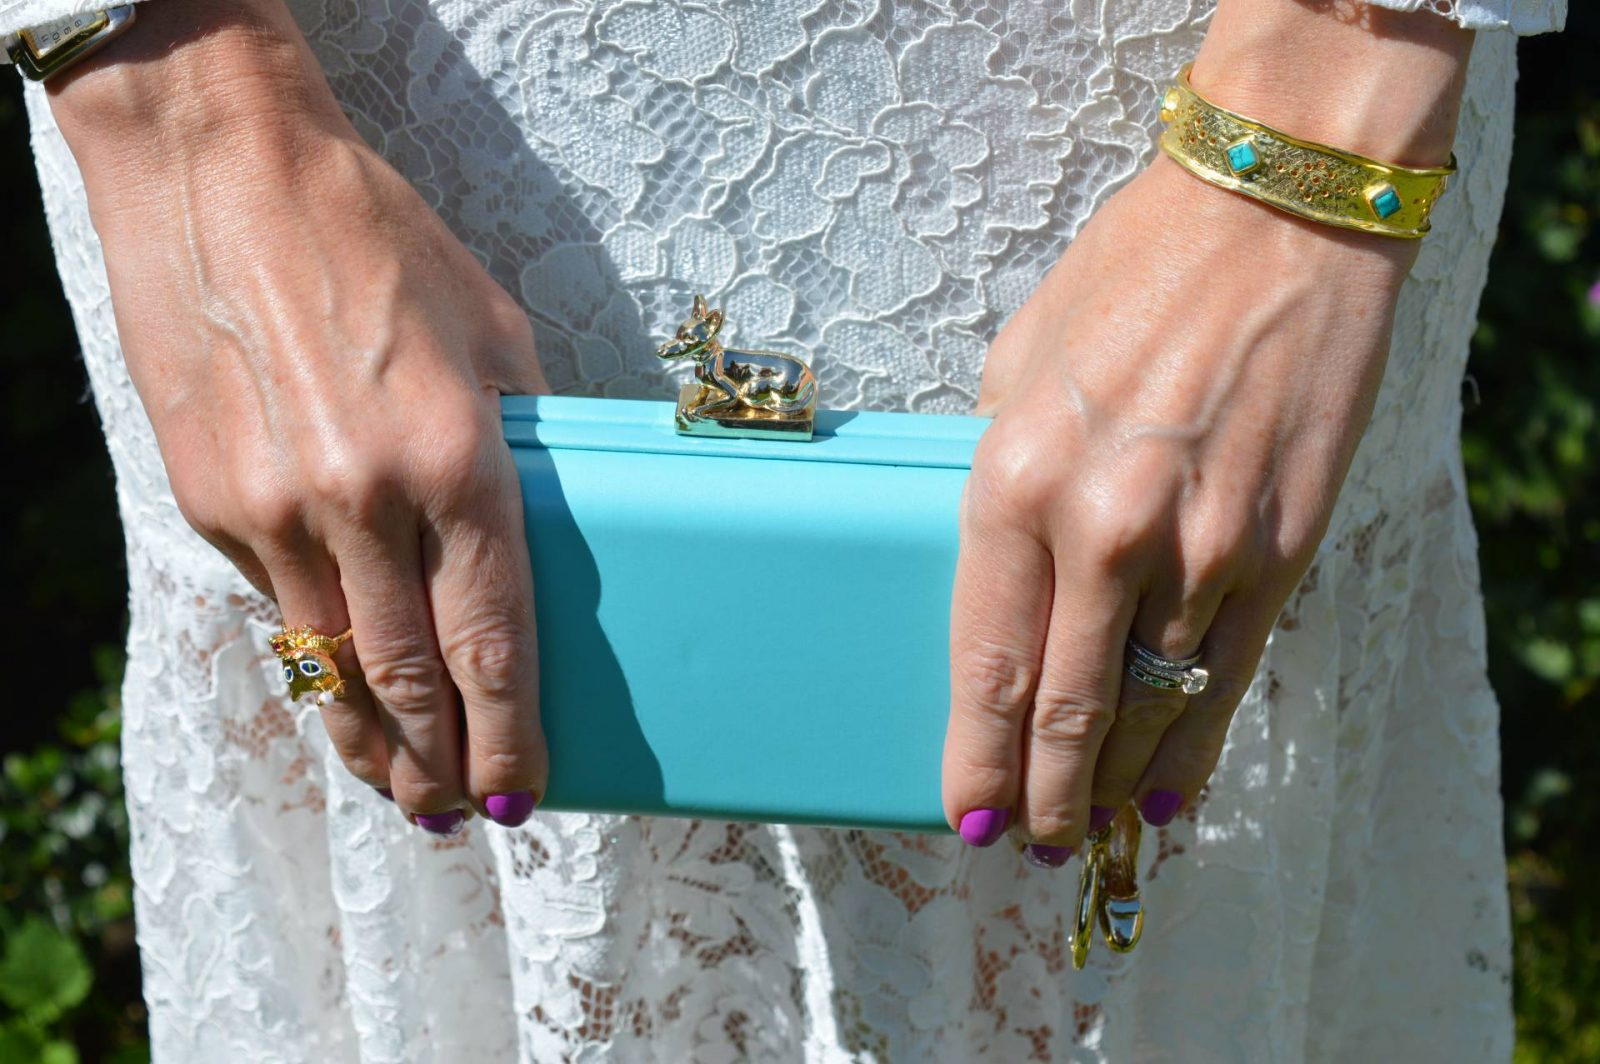 Wedding Guest Dresses From PrettyLittleThing white lace dress, Anna Dello Russo for H&M turquoise clutch Azuni cuff